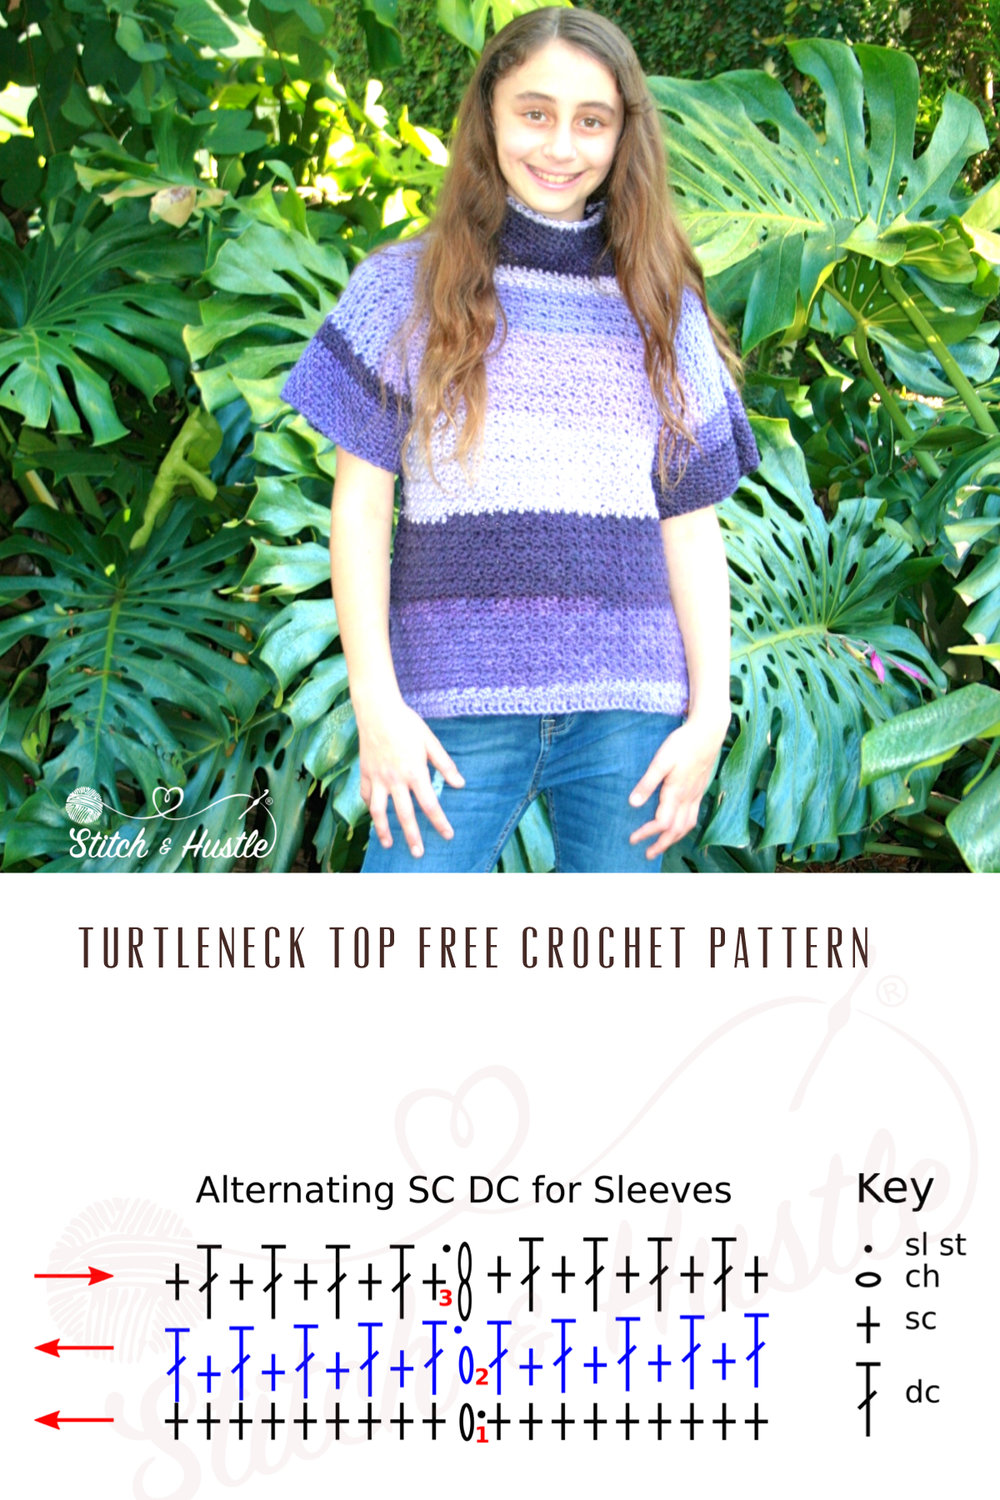 Turtleneck_top_free_crochet_pattern_2.jpg